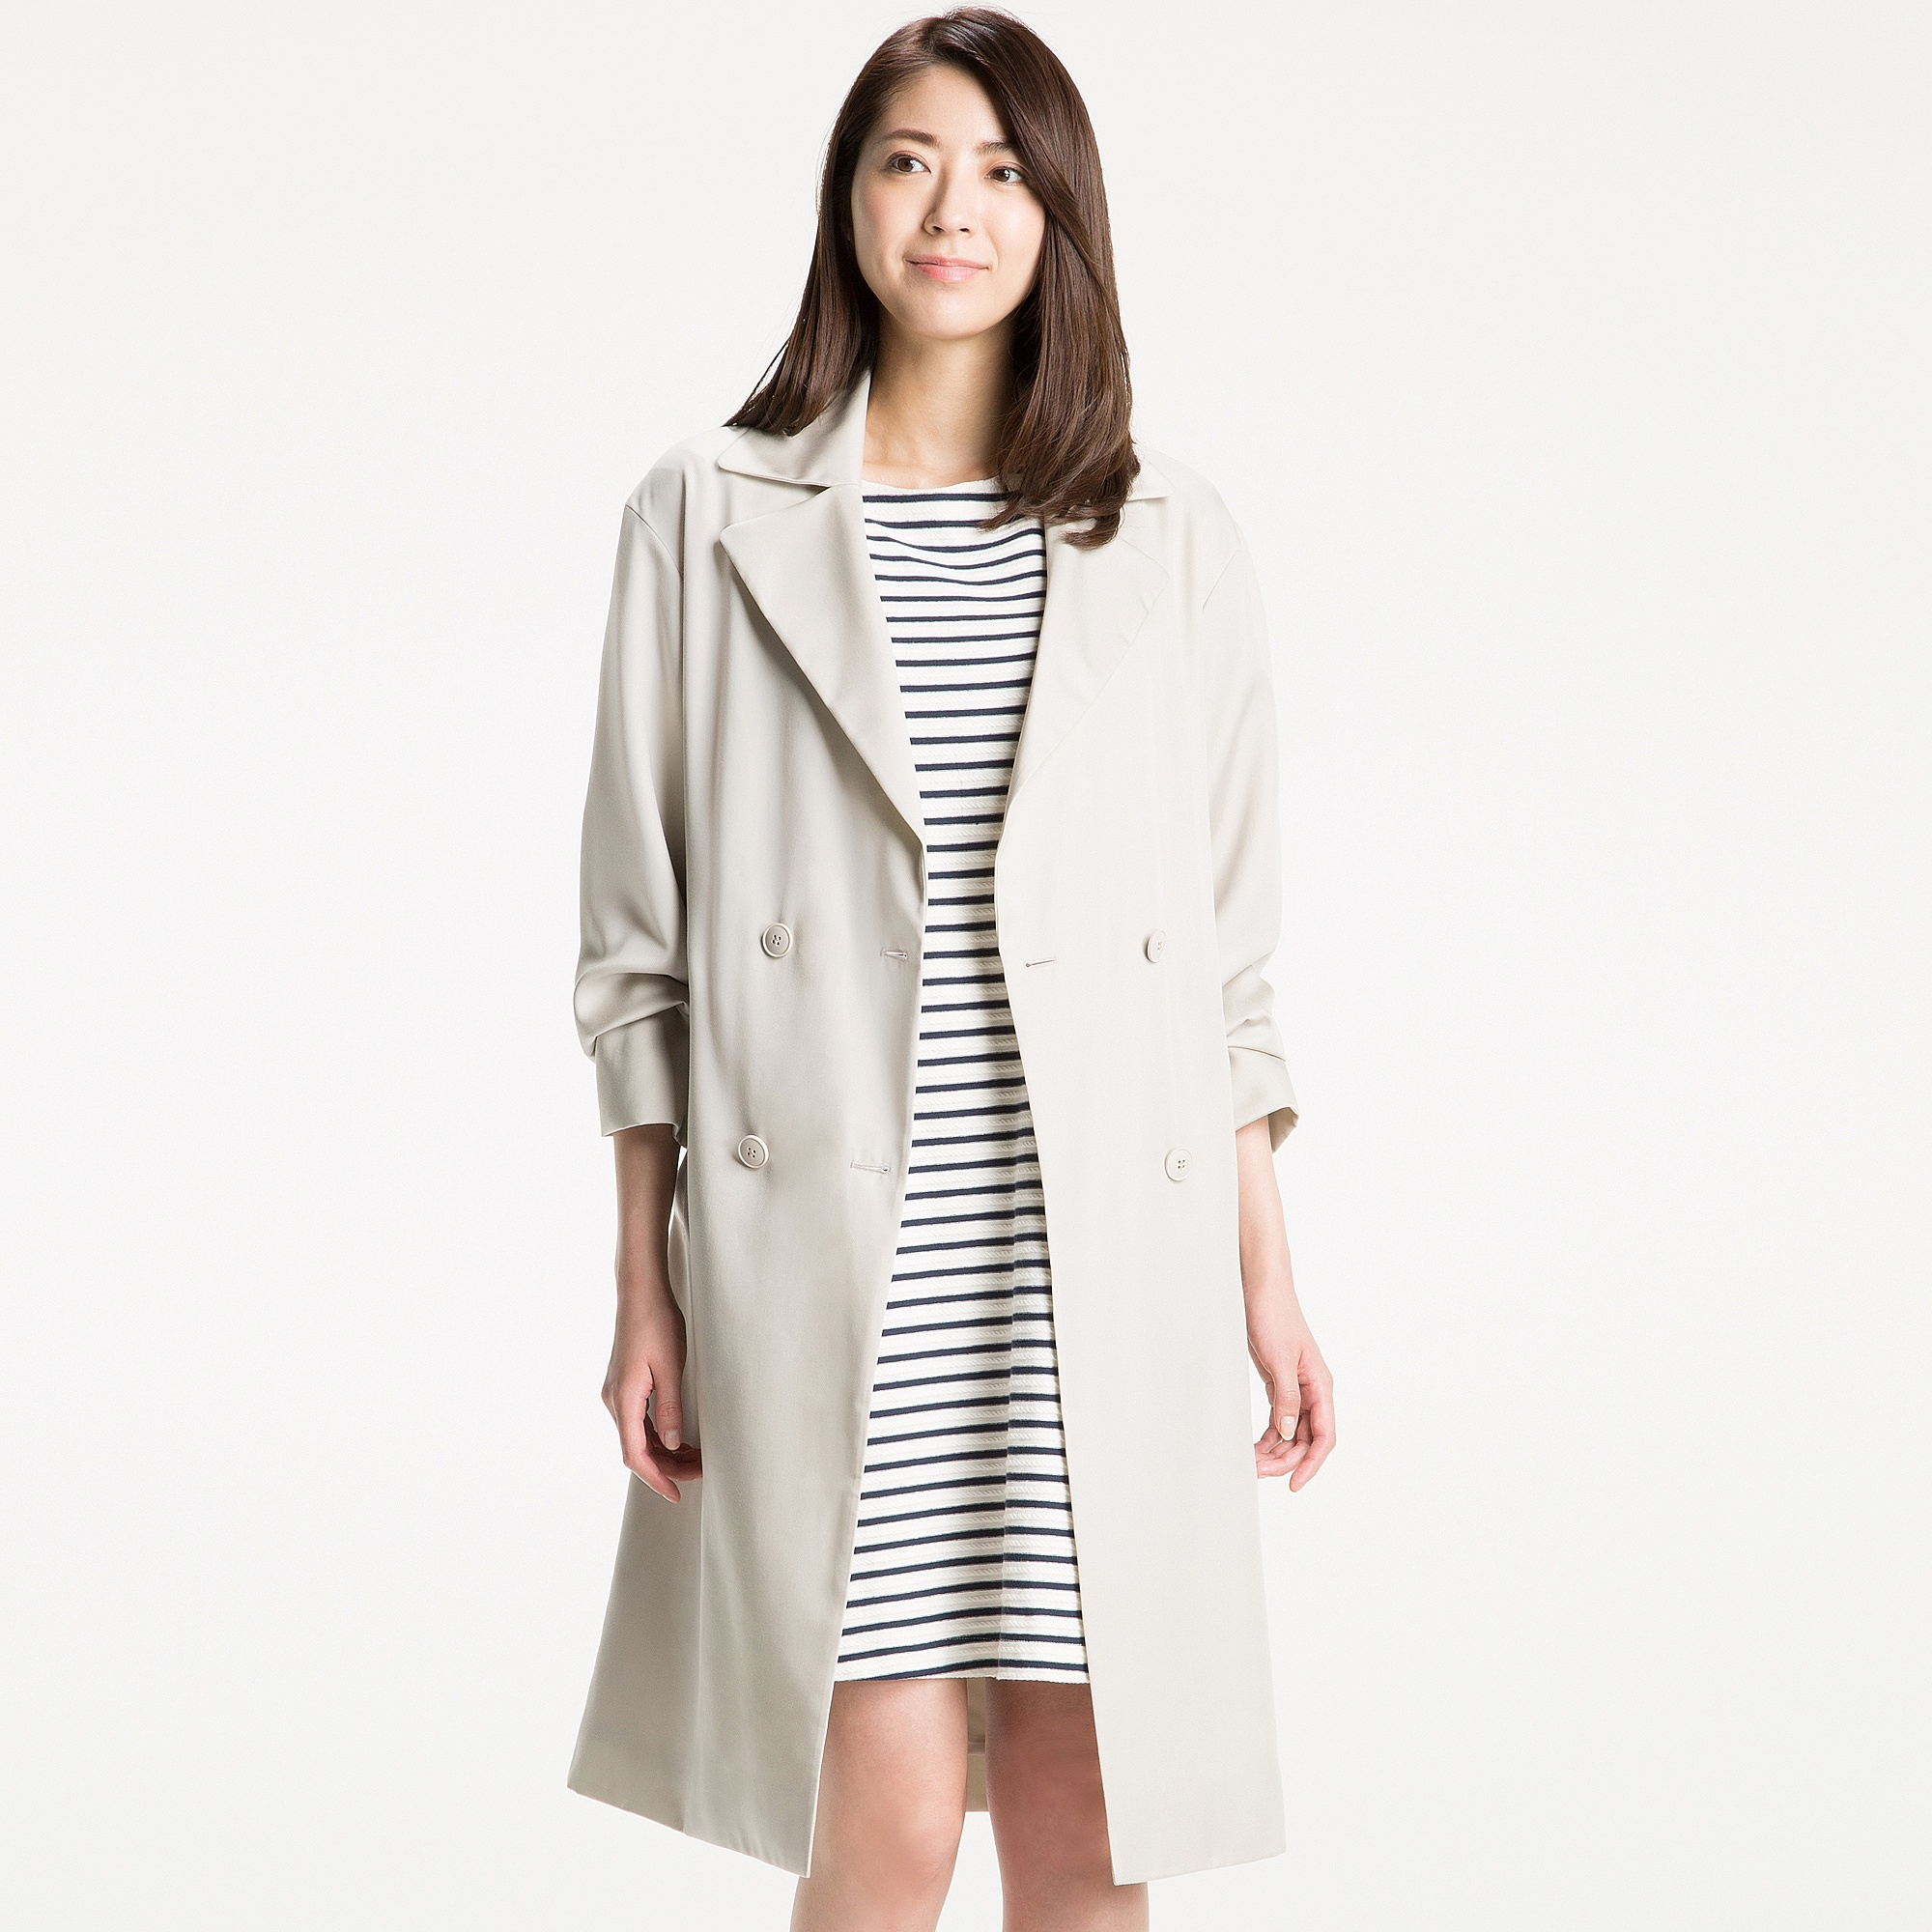 nacy pin black marl muubaa milat drape seisei grey s drapes coat